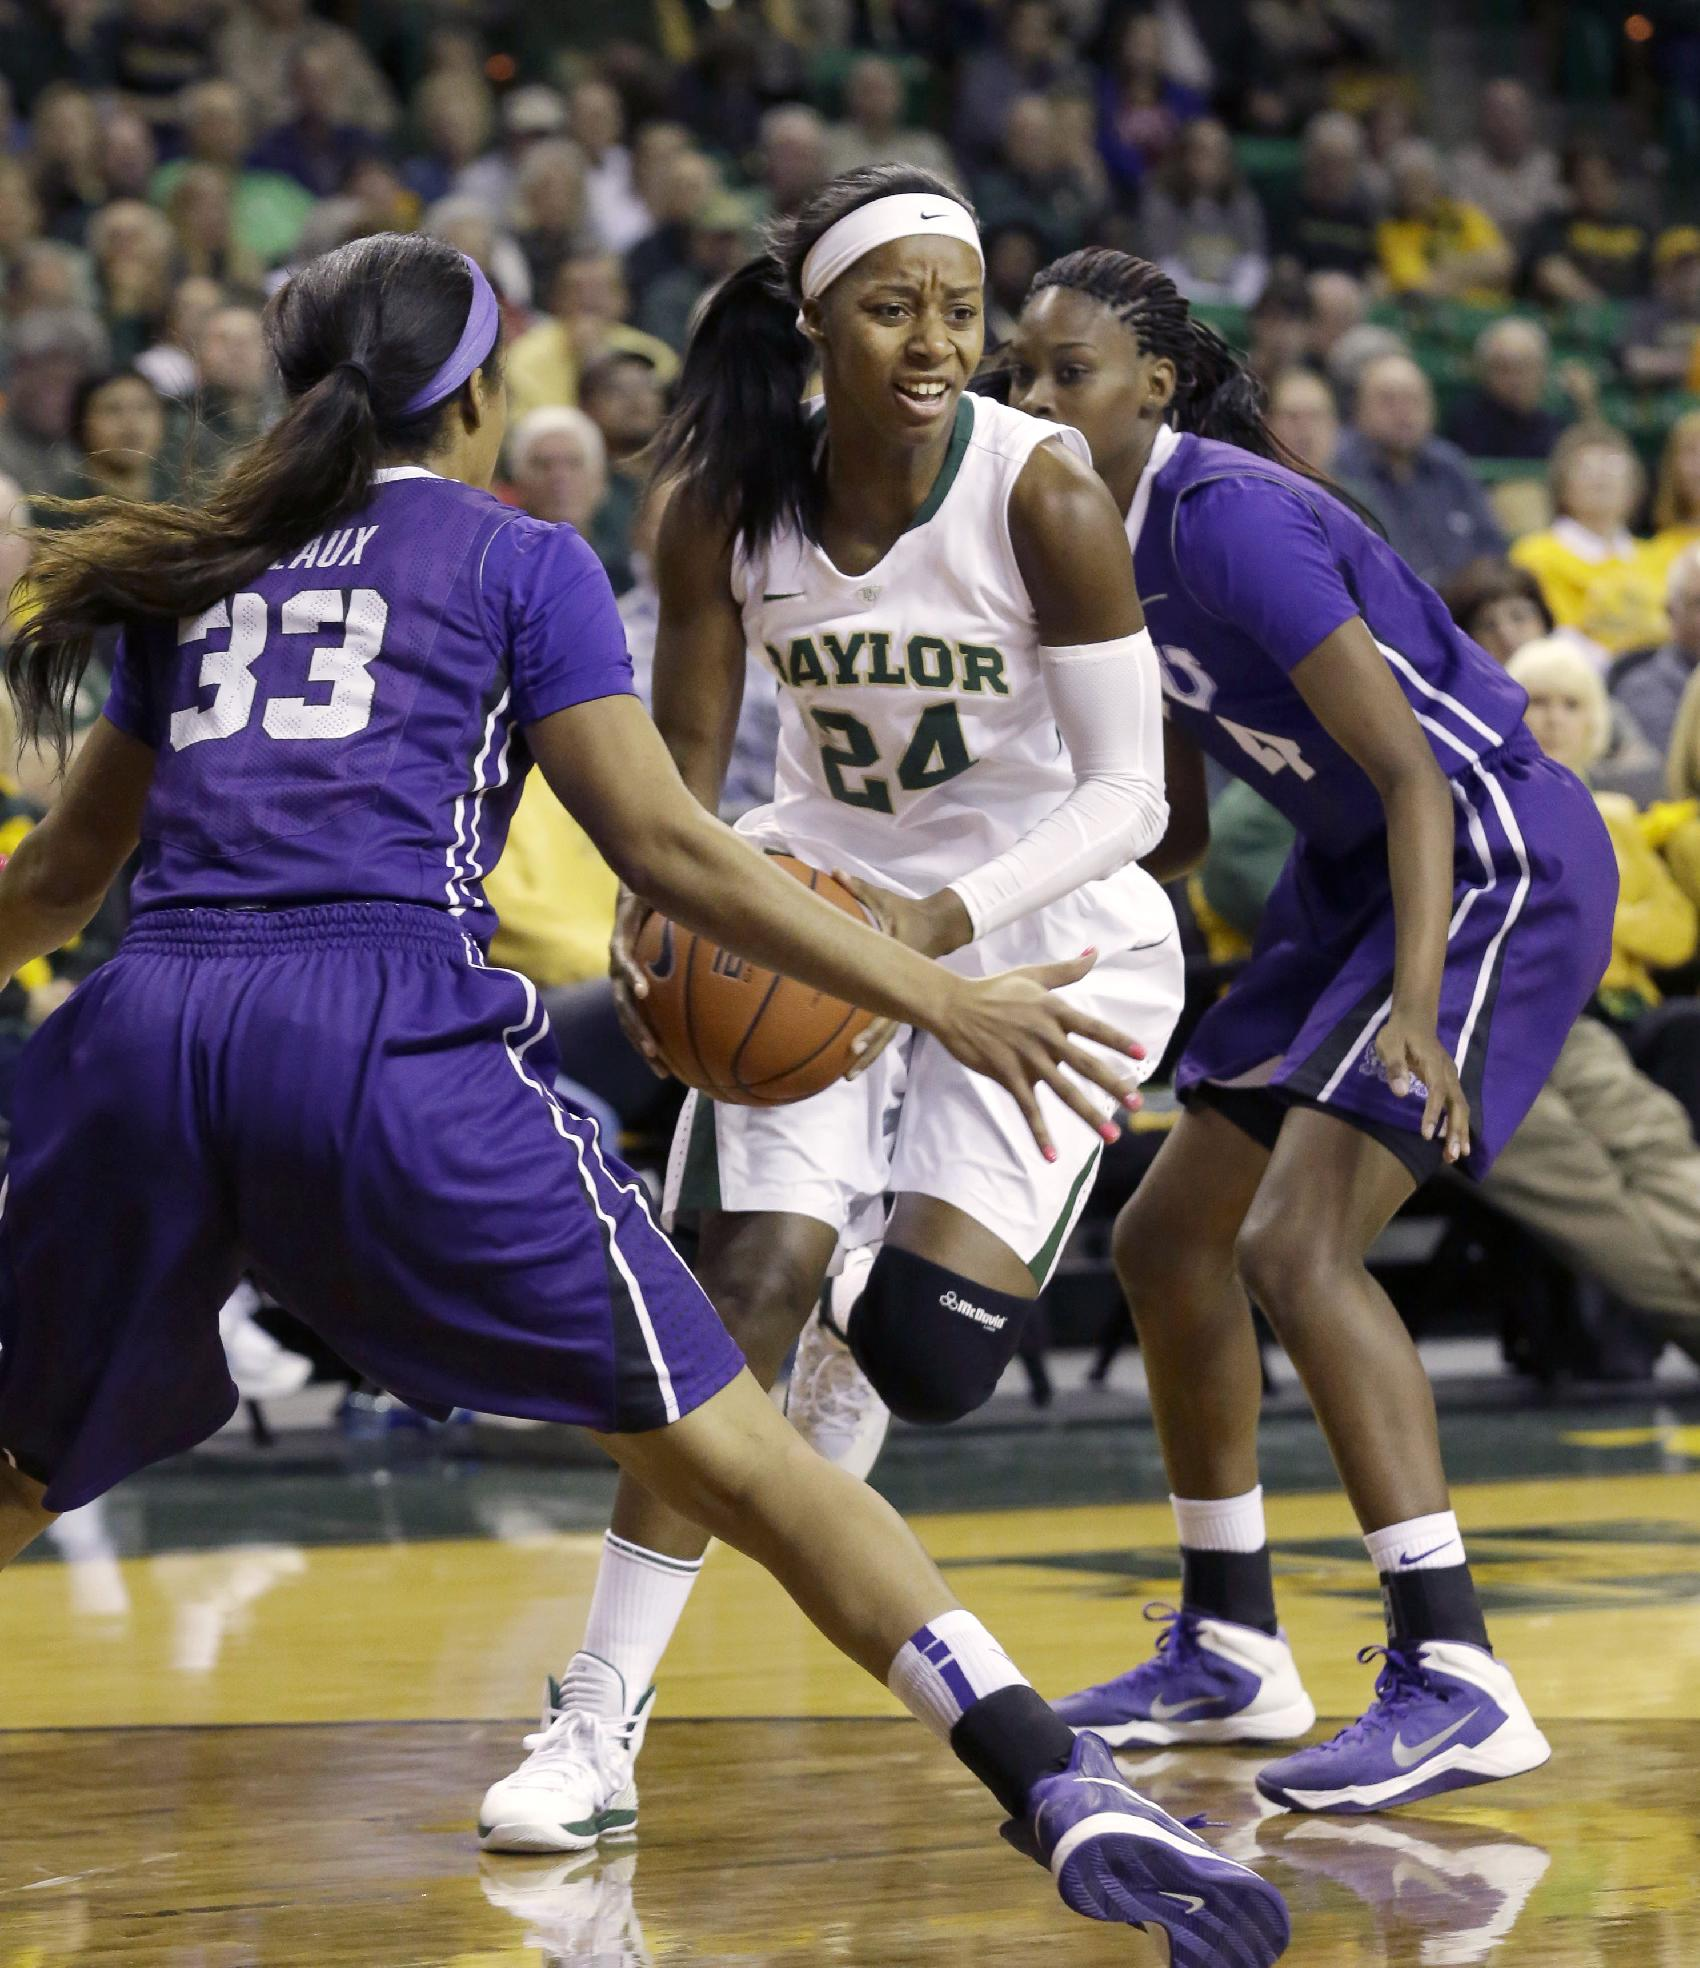 Baylor guard Ieshia Small (24) drives between TCU guard Donielle Breaux (33) and forward Chelsea Prince (4) during the first half of an NCAA college basketball game, Saturday, Jan. 11, 2014, in Waco, Texas